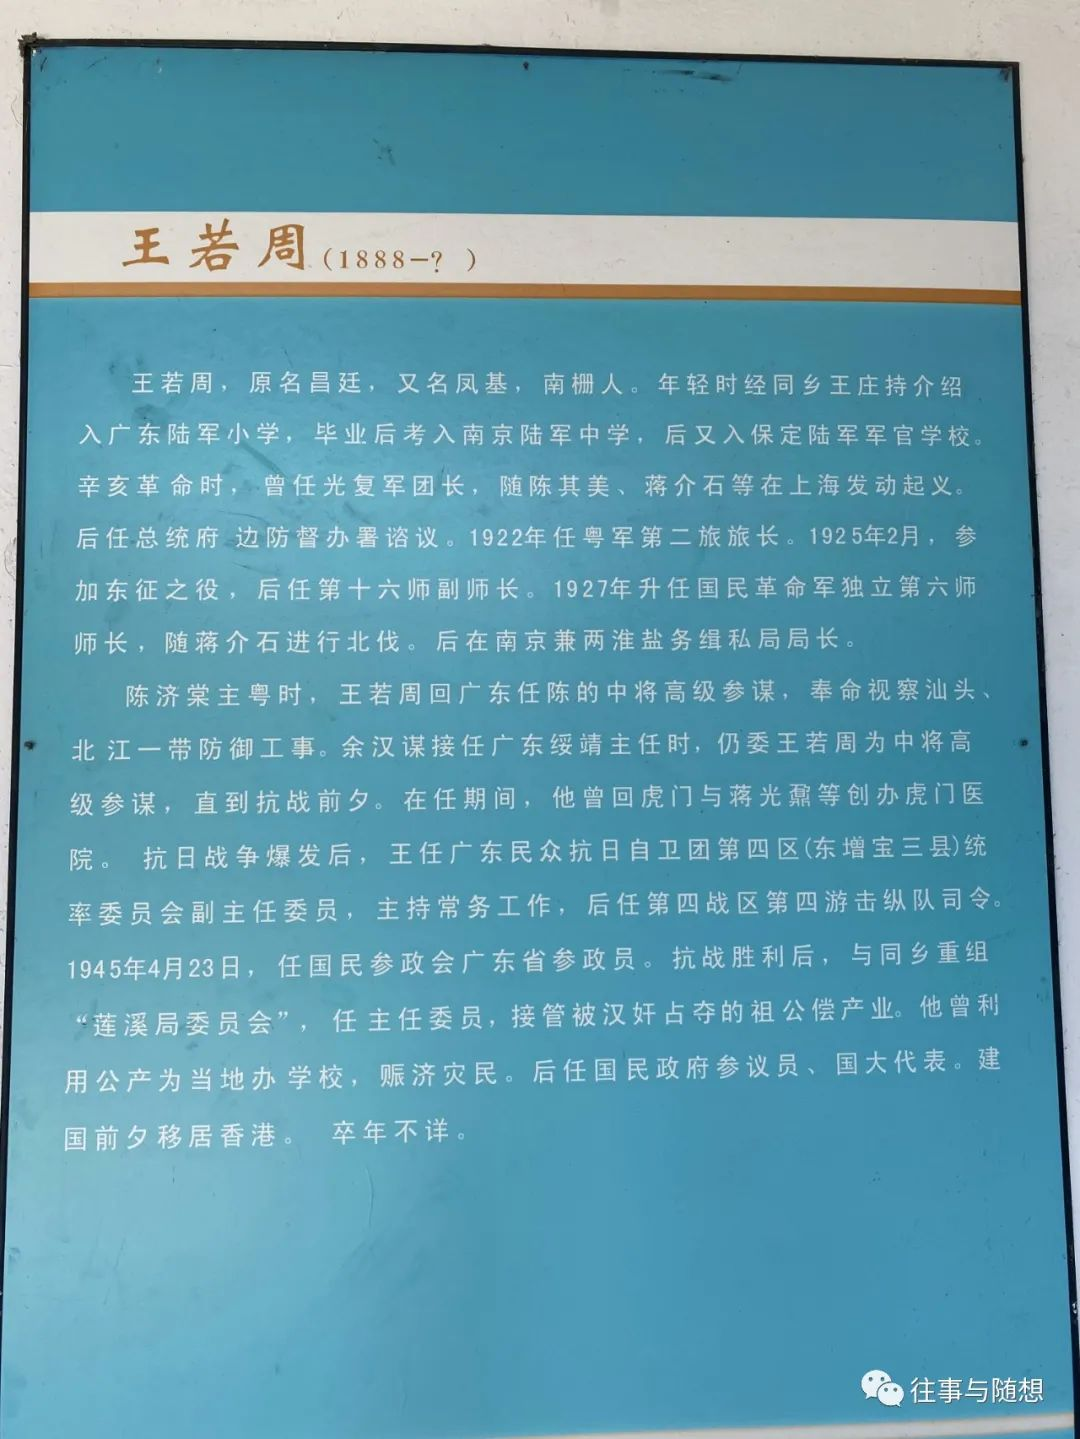 Blue poster with a lengthy biographical text in Chinese about a man named Wang Ruozhou, born 1888, year of death unknown